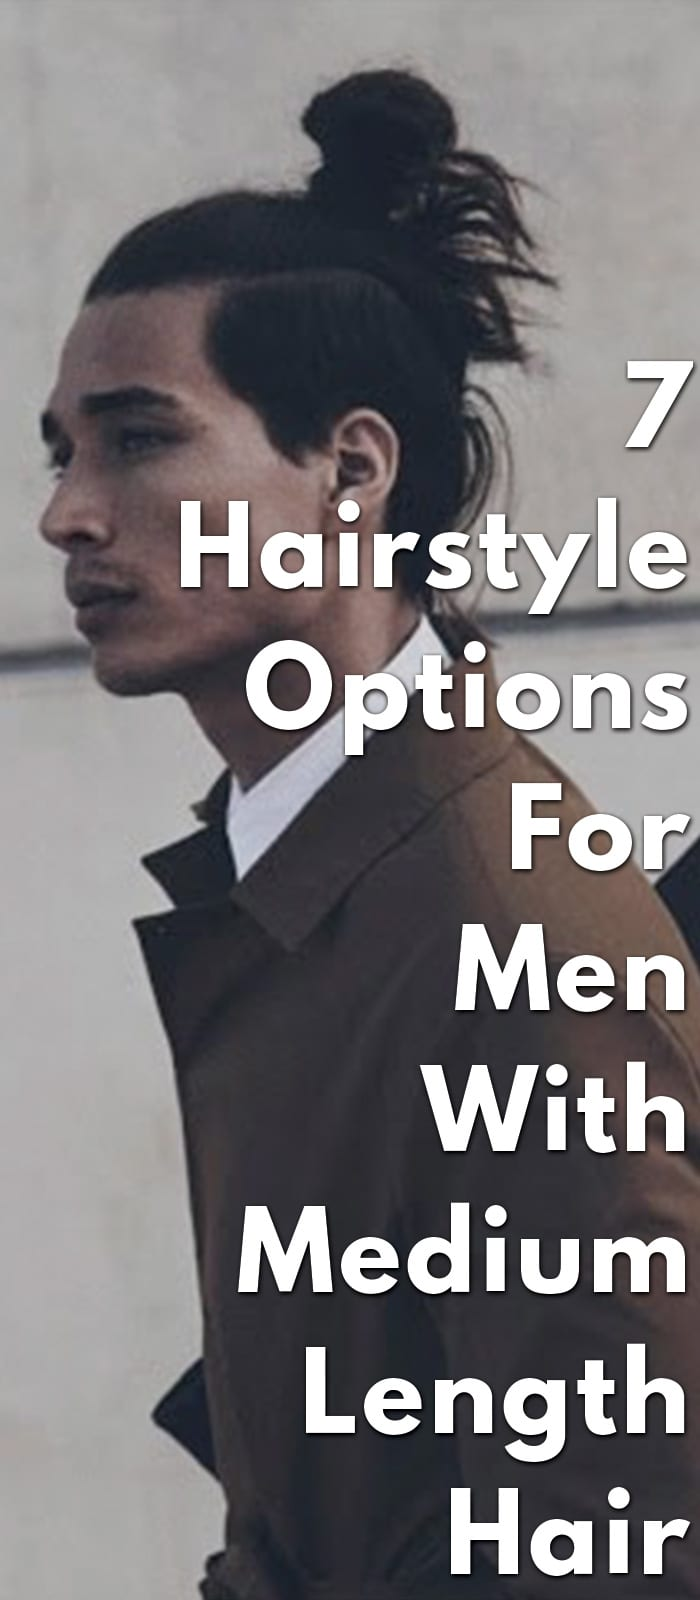 7-Hairstyle-Options-For-Men-With-Medium-Length-Hair